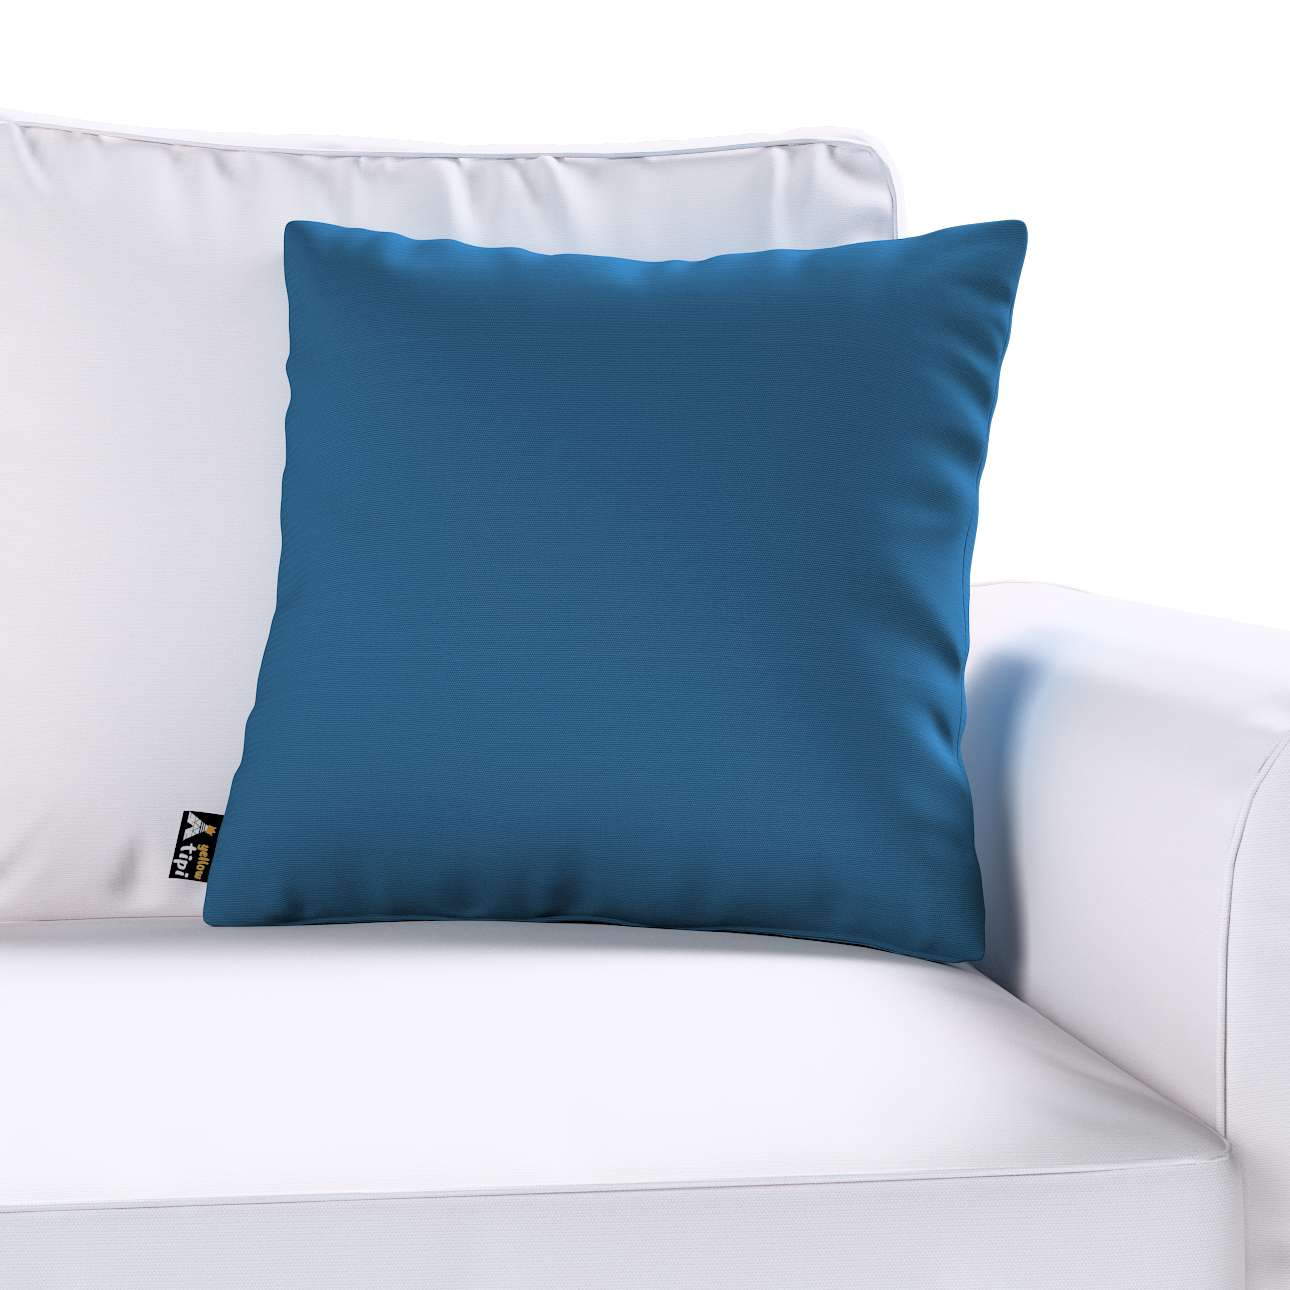 Milly cushion cover in collection Cotton Story, fabric: 702-30